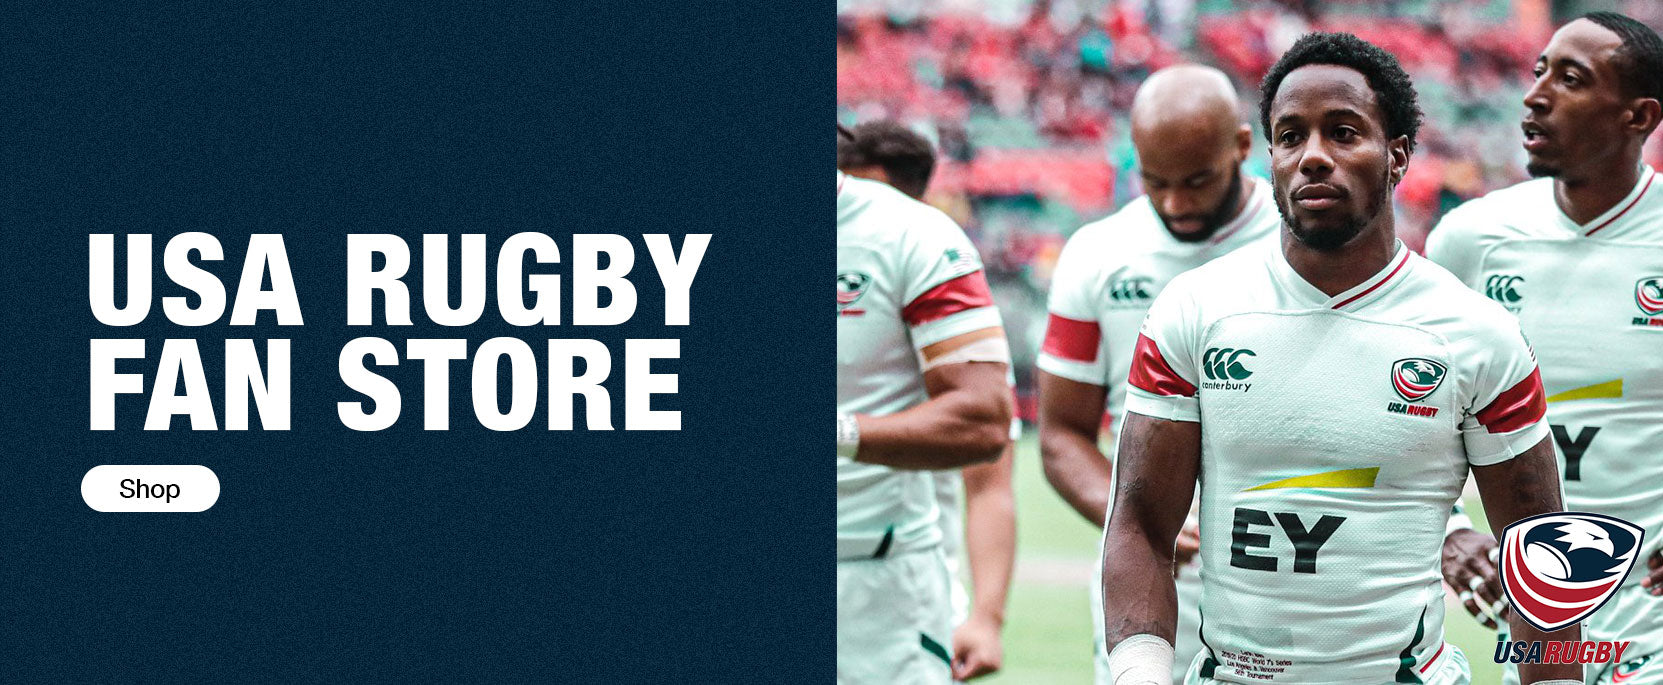 USA Rugby Fan Store